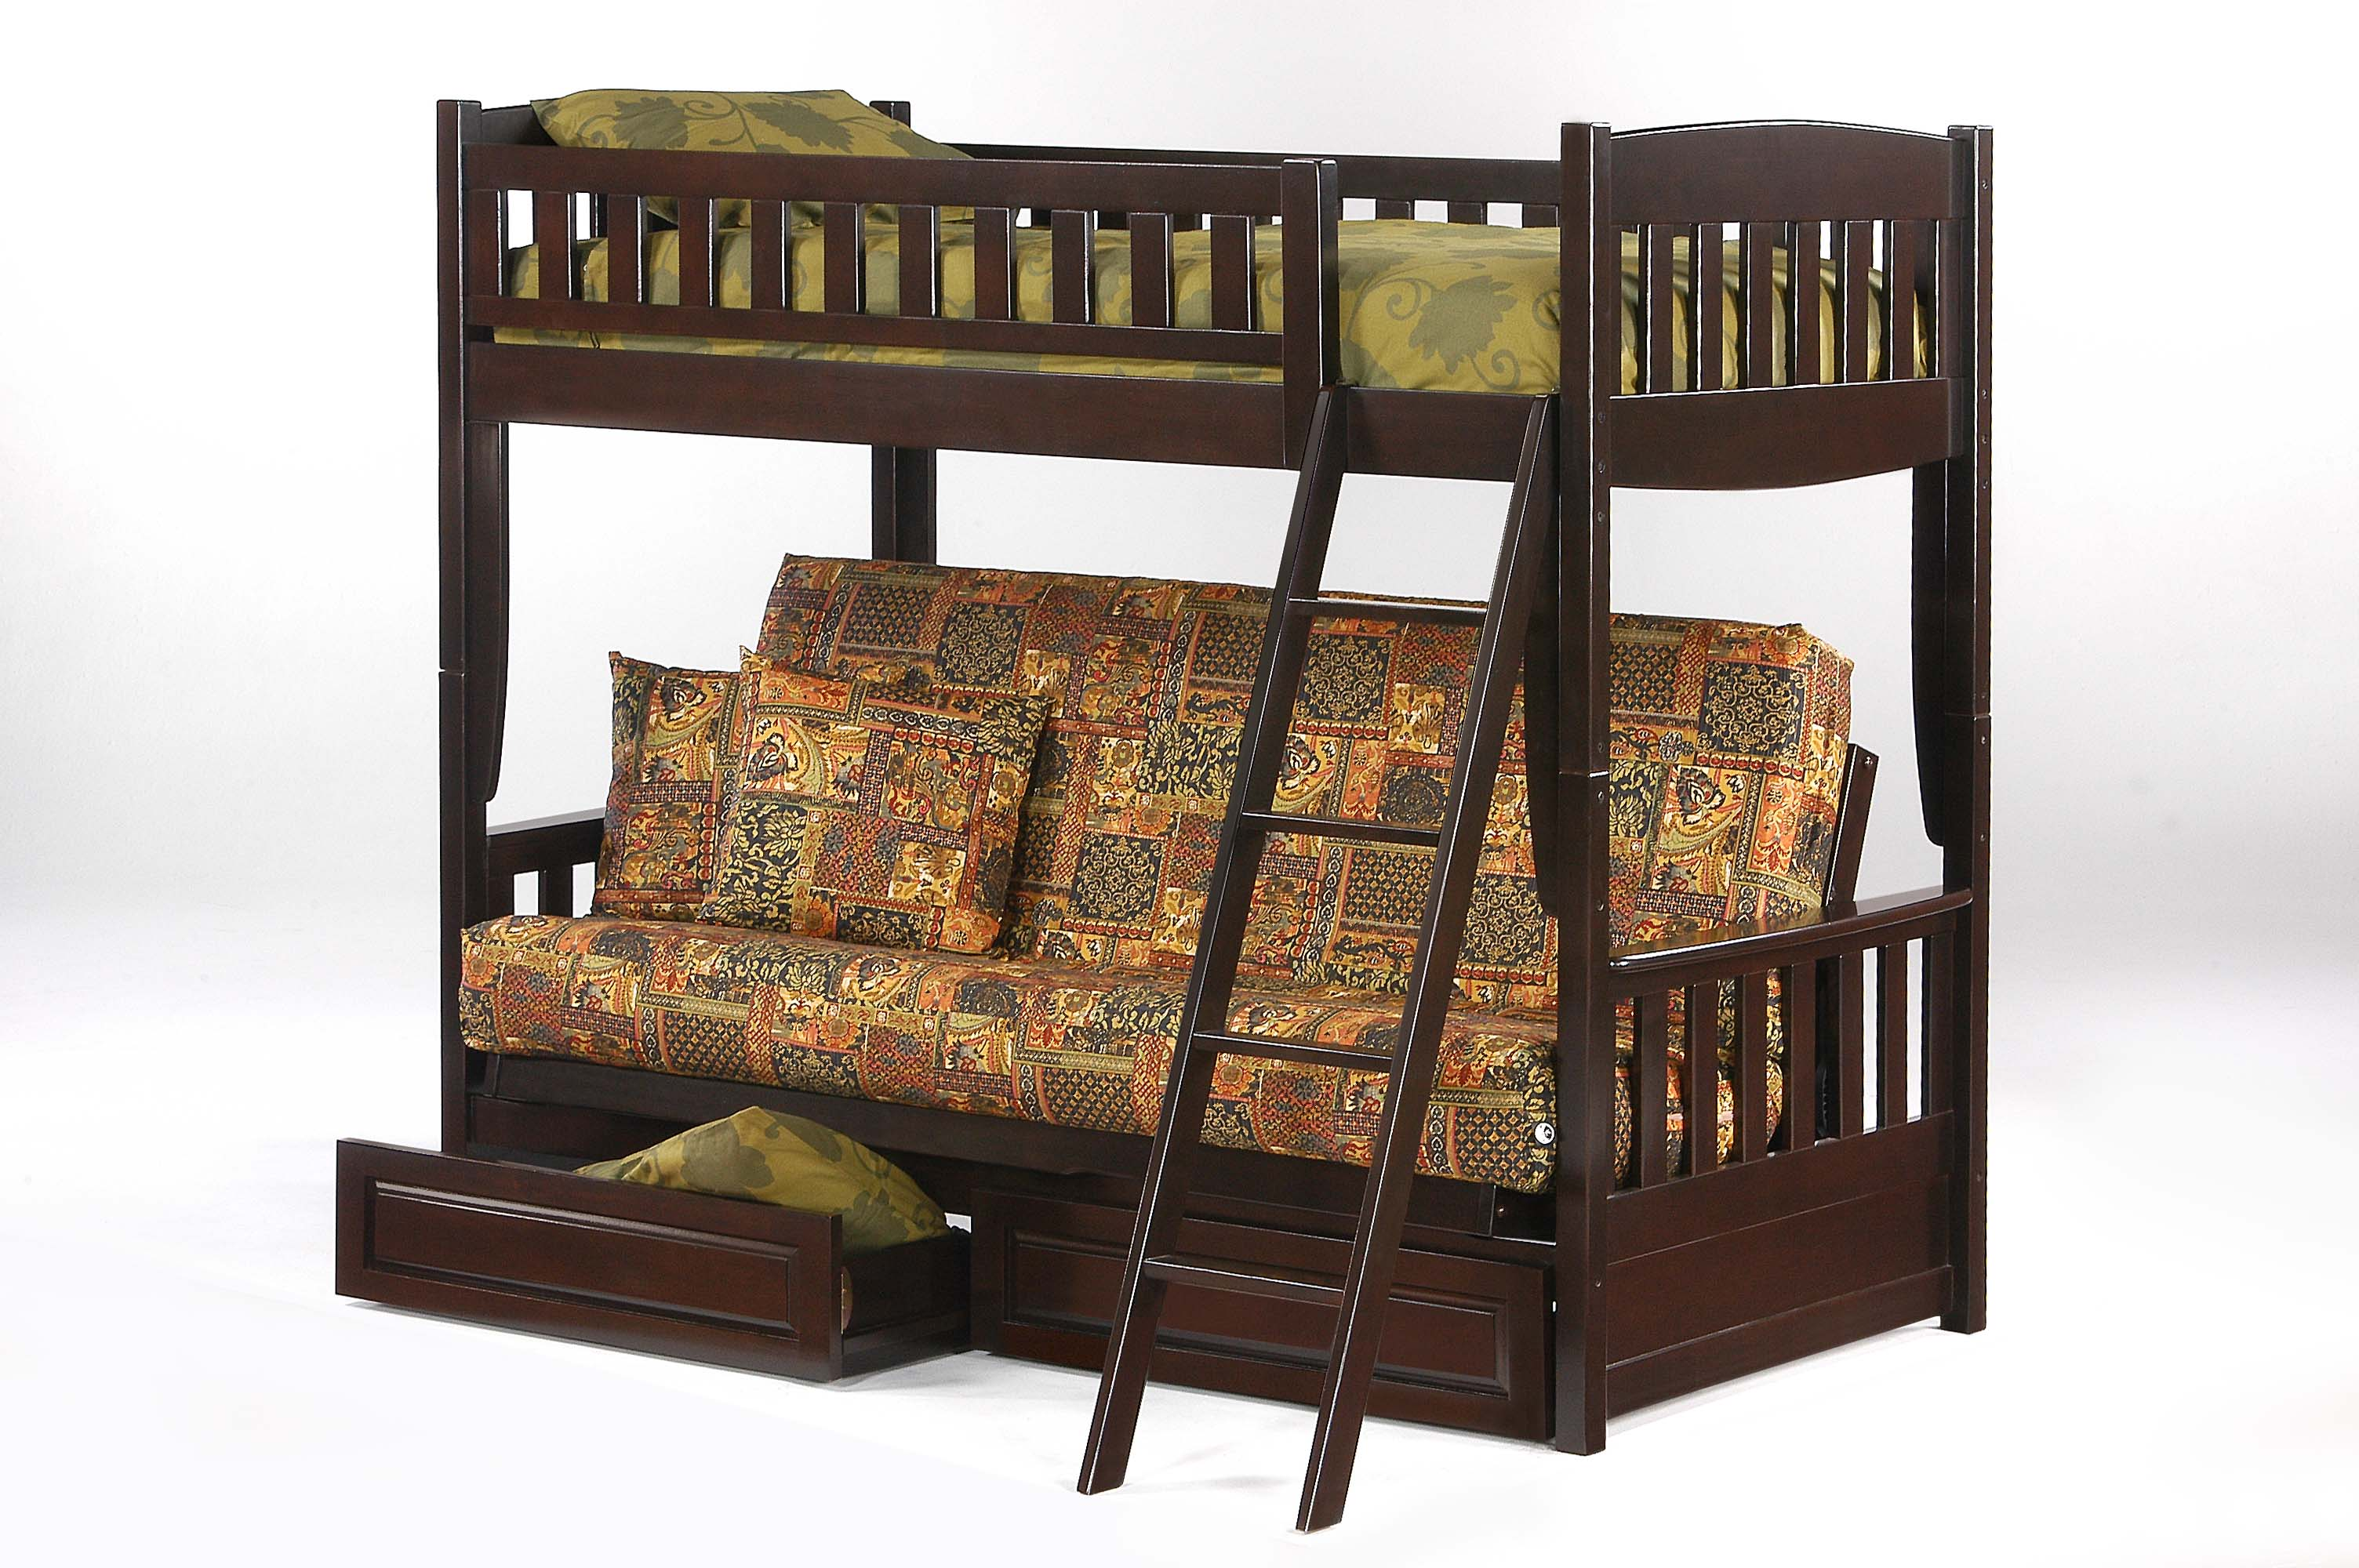 Cinnamon Futon Bunk Dark Chocolate W Drawer Opened